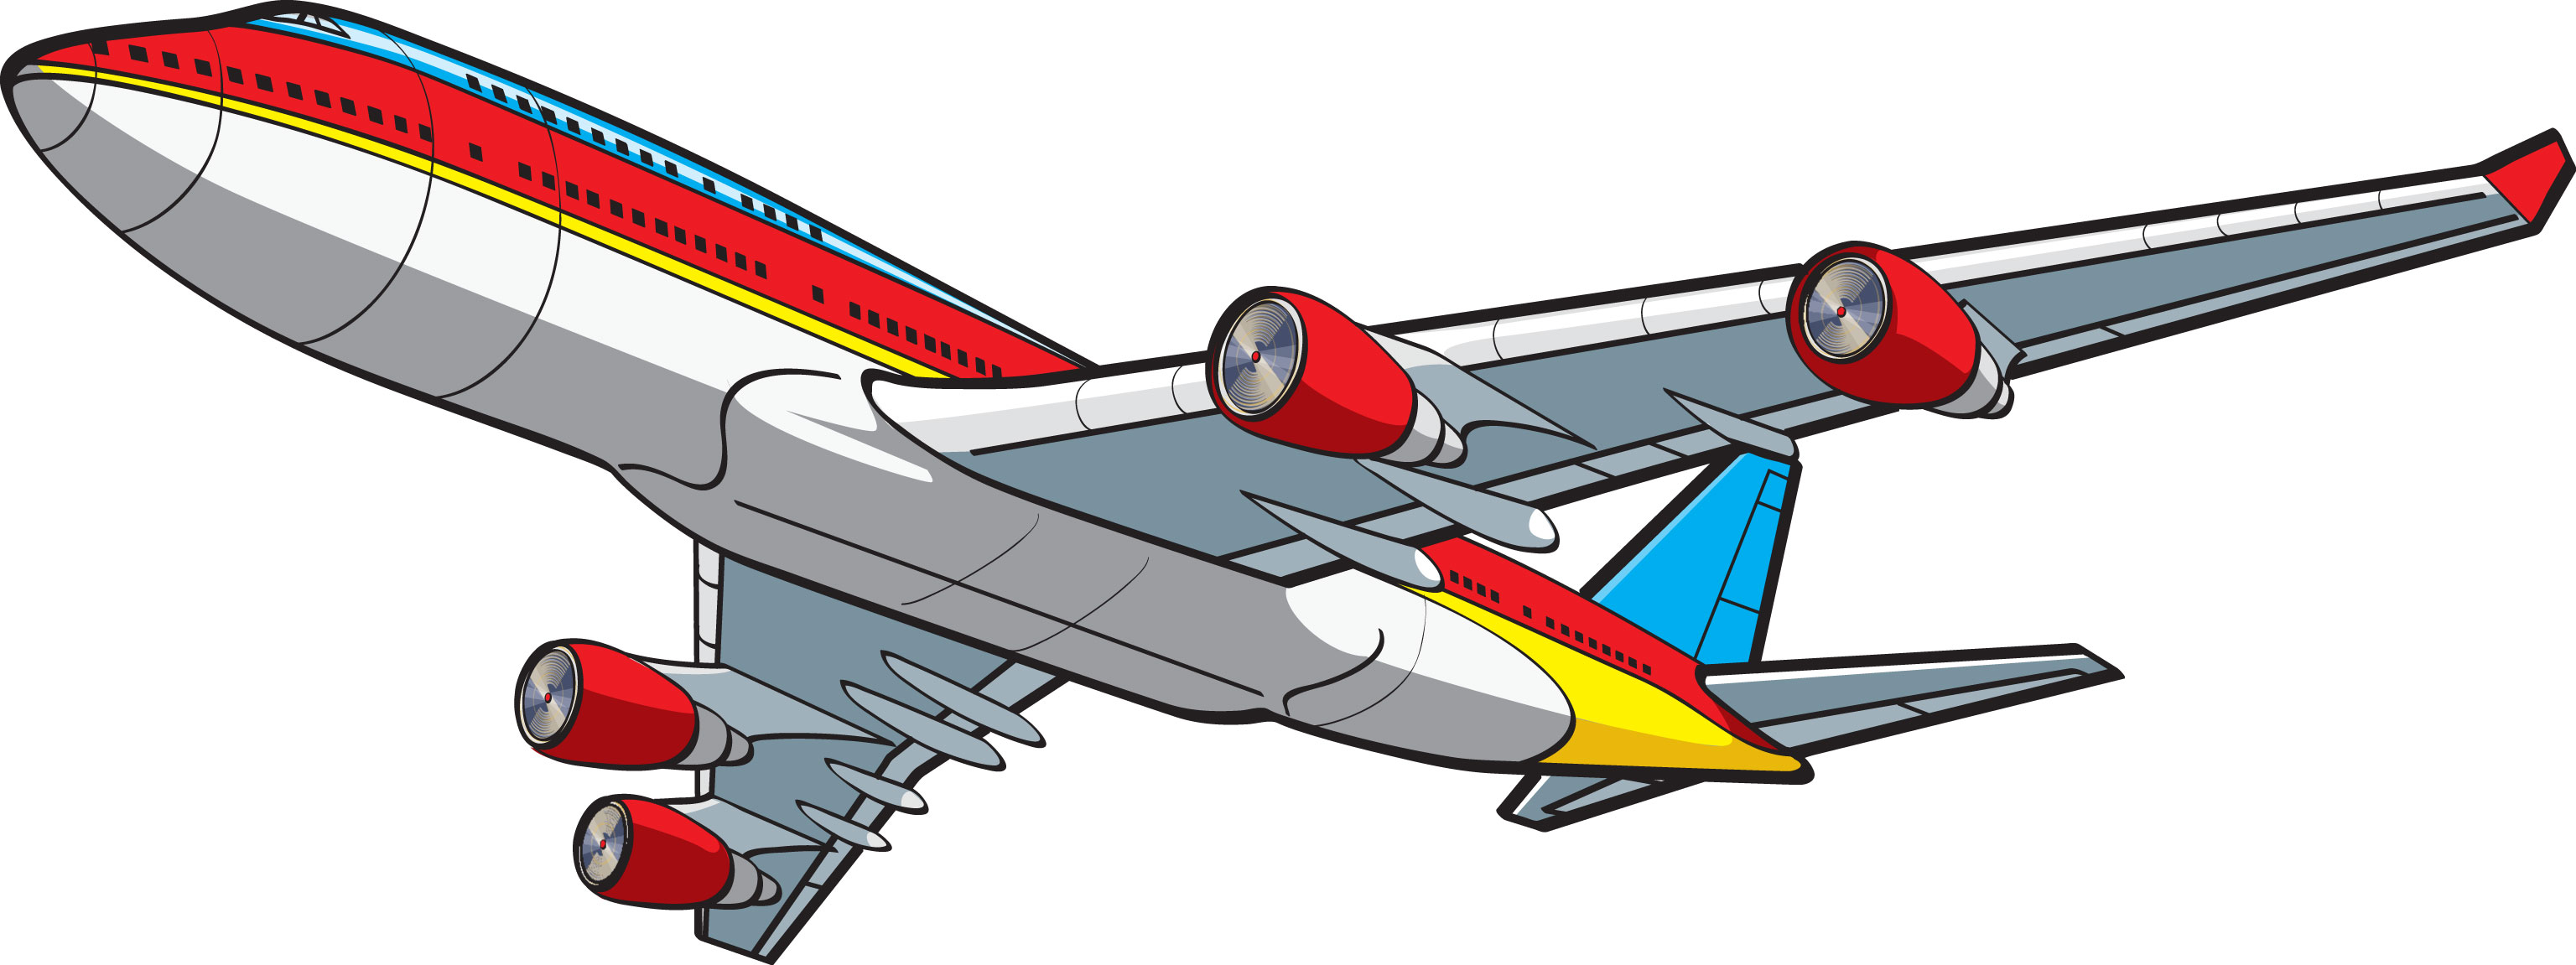 3072x1151 Airplane Clipart Clipart Cliparts For You 3